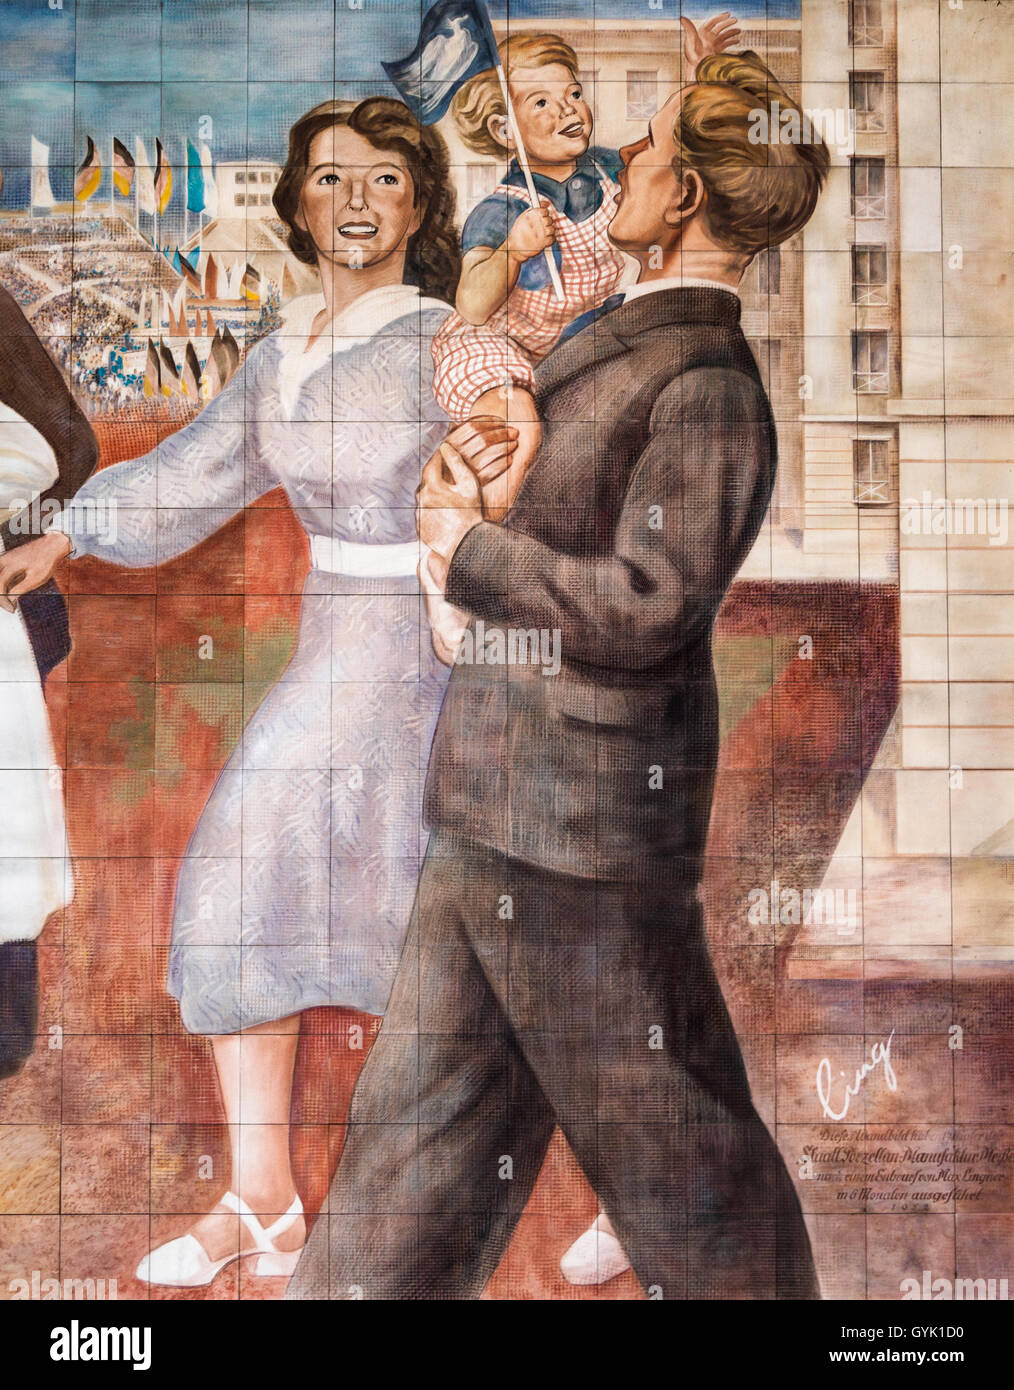 Details from 1950s DDR East German propagandist mural by Wolfgang Ruppel Berlin Germany - Stock Image